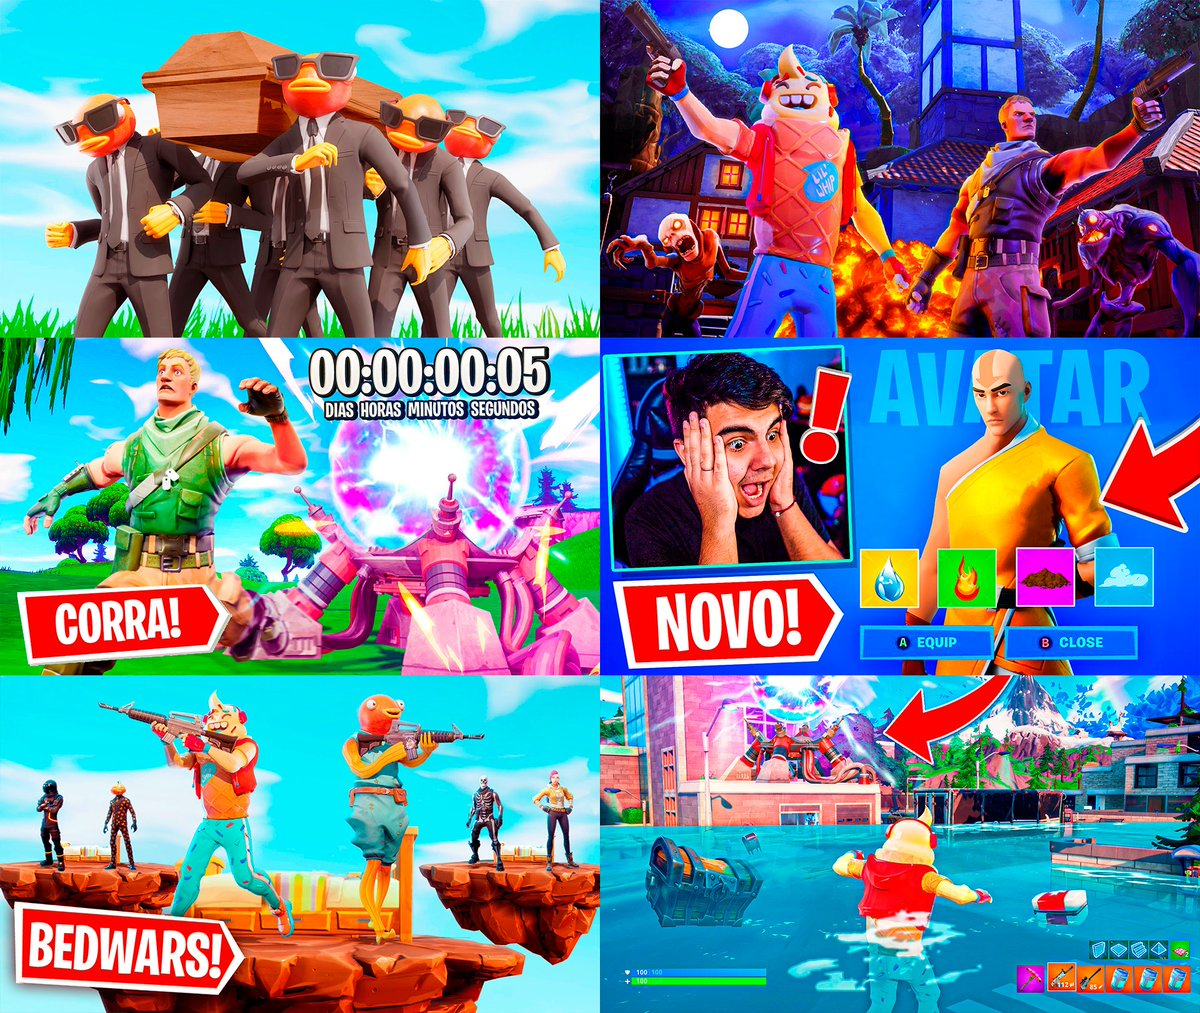 Fortnite Thumbnail's  #RT and #LIKE are appreciated! pic.twitter.com/vYffOF4Poc